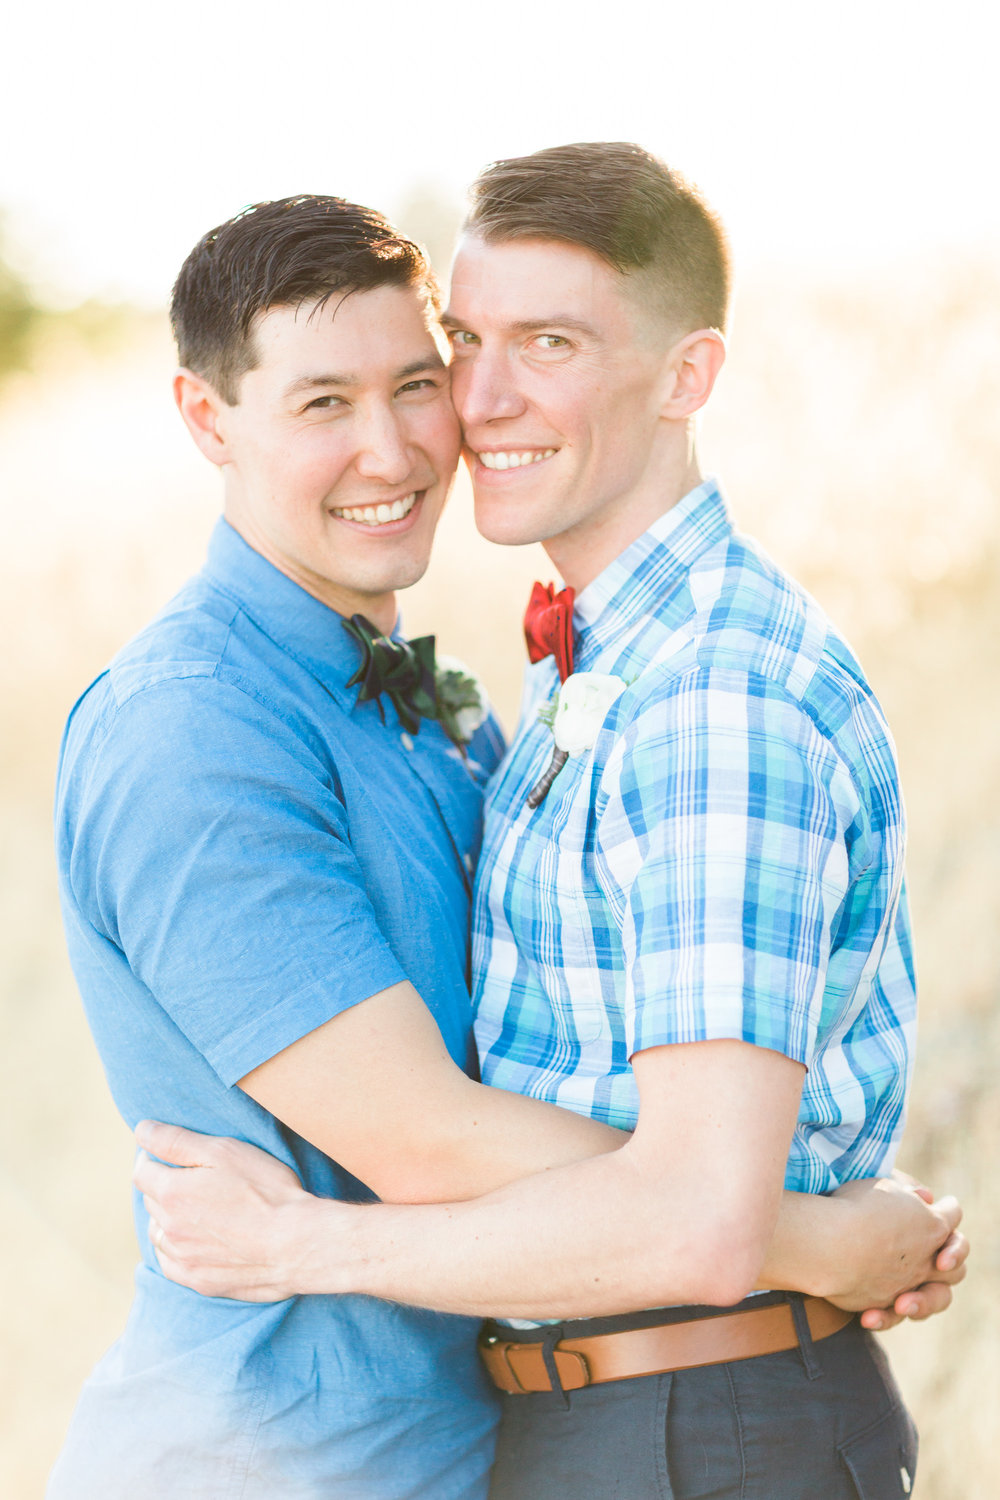 Smiling grooms on their wedding day